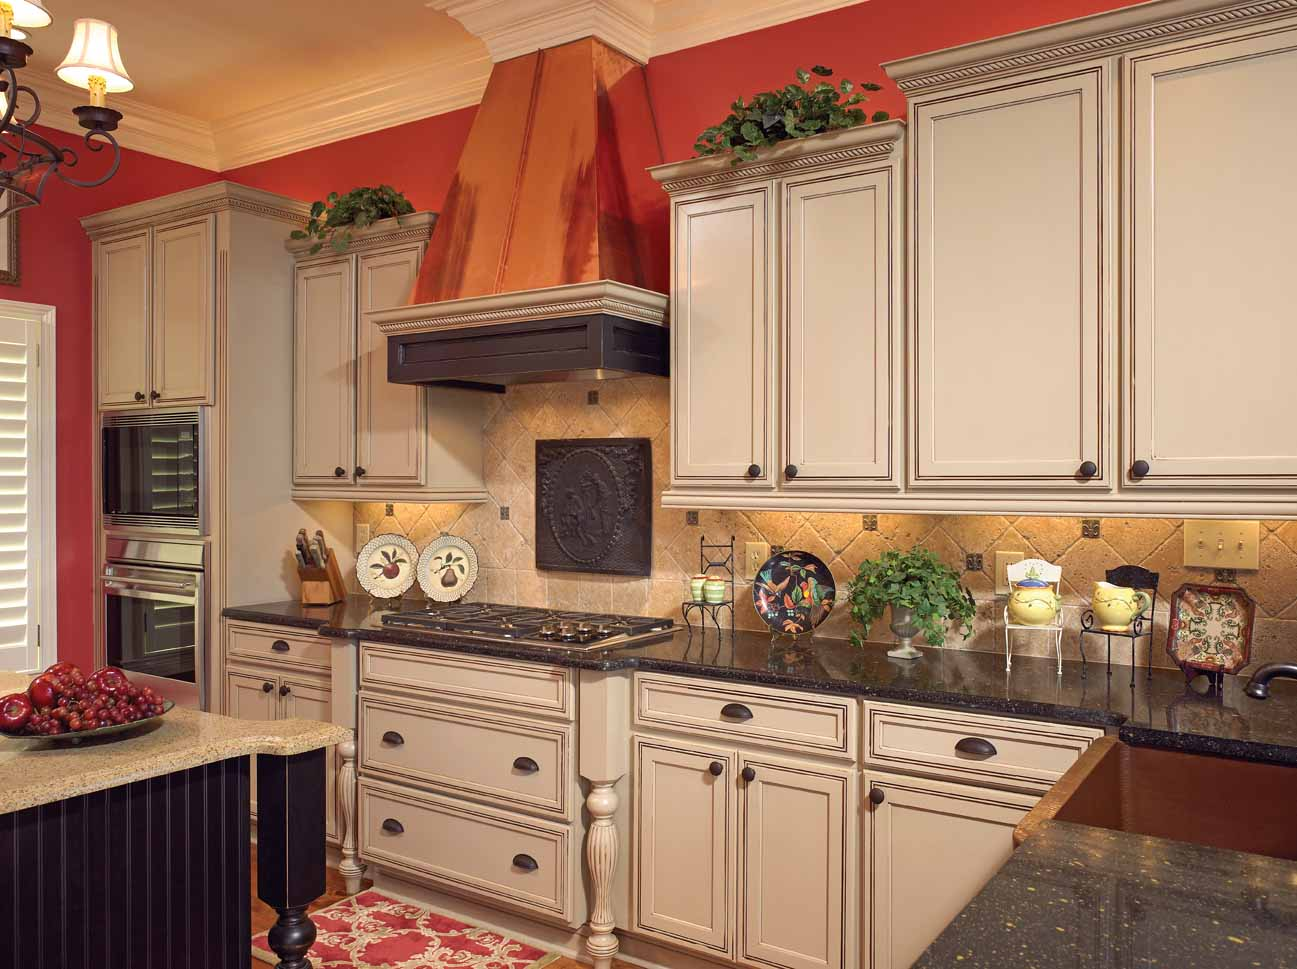 Kitchen cabinets bathroon cabinets remodeling cabinets for Cabinetry kitchen cabinets